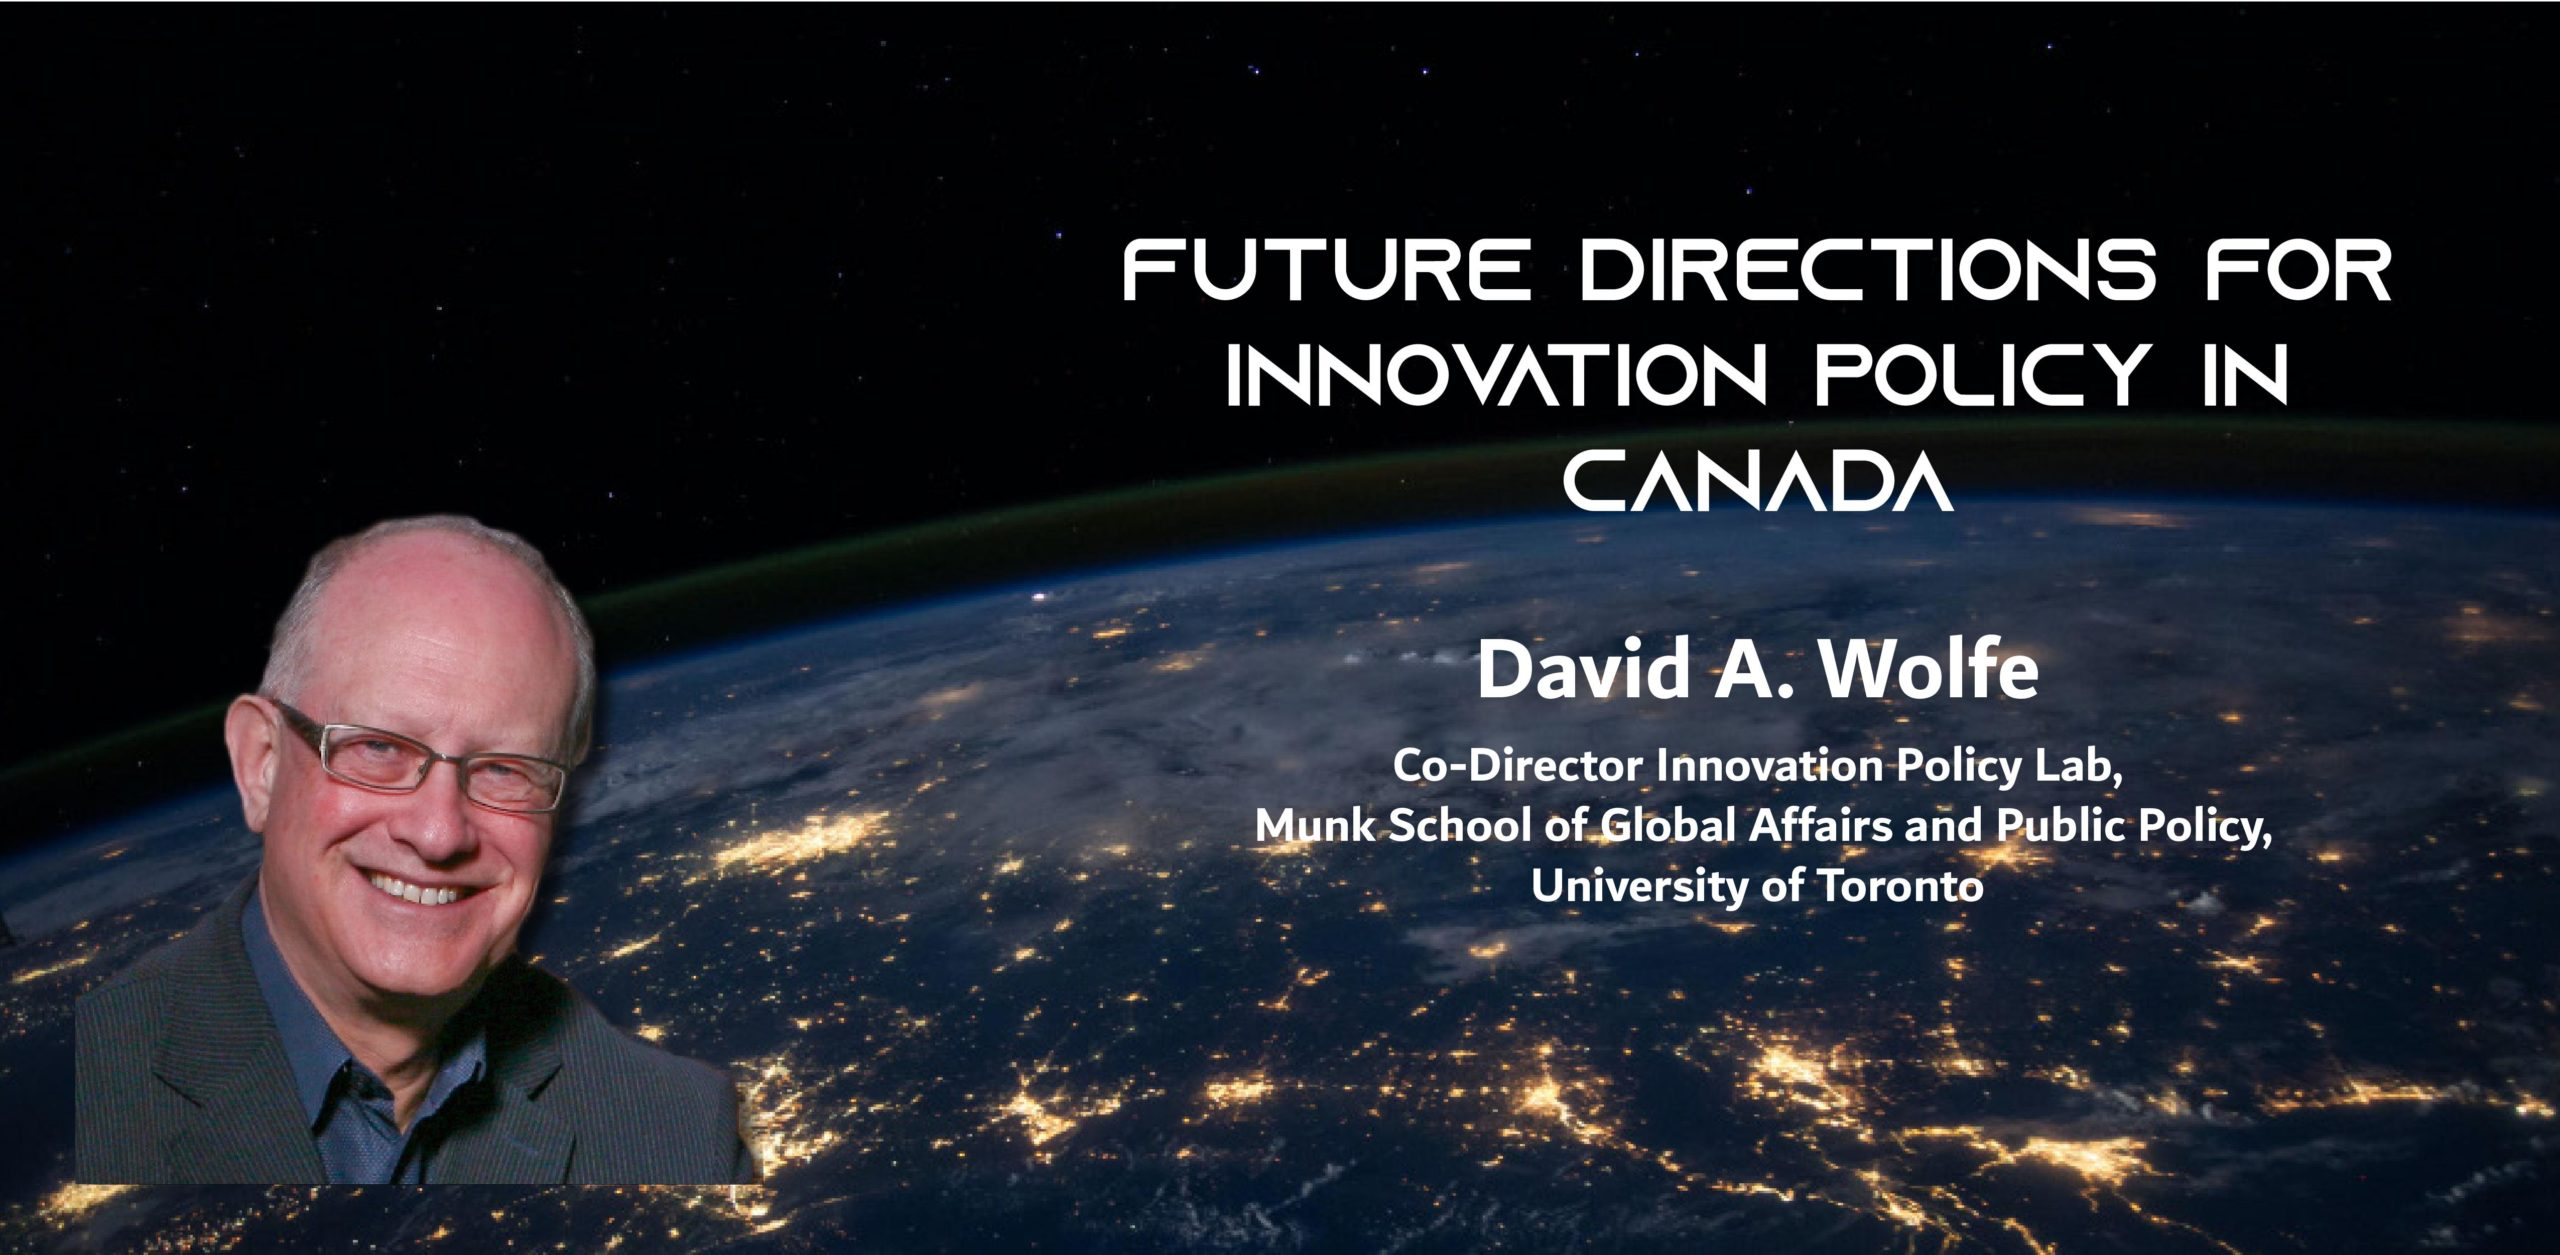 A picture of a man against the globe at night, with the text: Future Directions for Innovation Policy in Canada David A. Wolfe Co-Director Innovation Policy Lab, Munk School of Global Affairs and Public Policy, University of Toronto